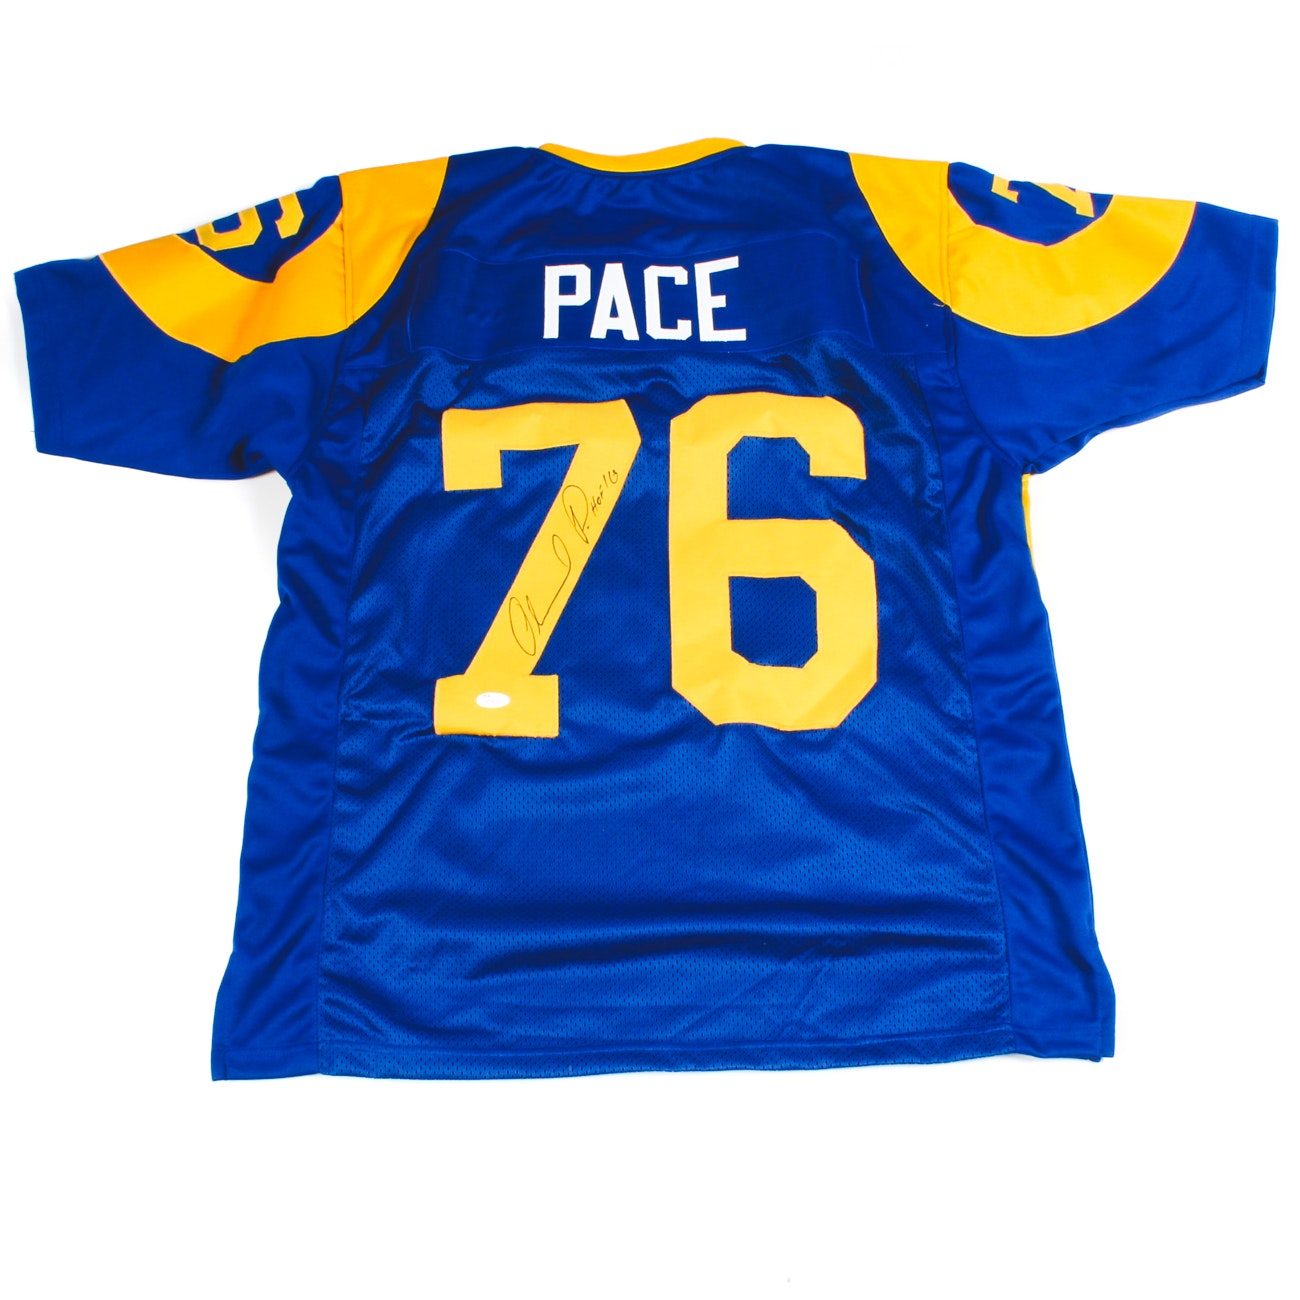 Orlando Pace Signed Rams Jersey  COA